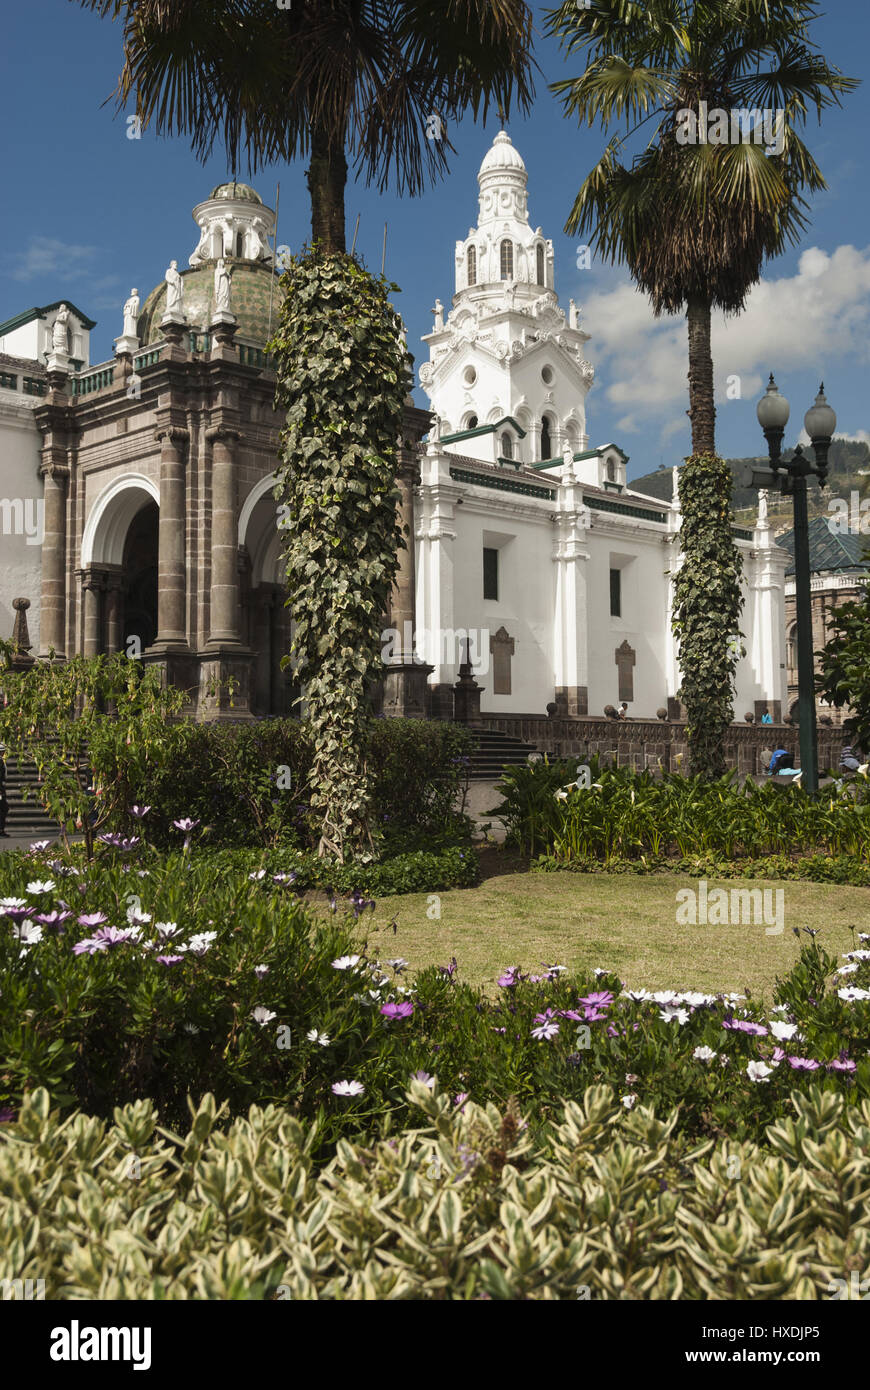 Equador, Quito, Plaza Grande with Cathedral - Stock Image